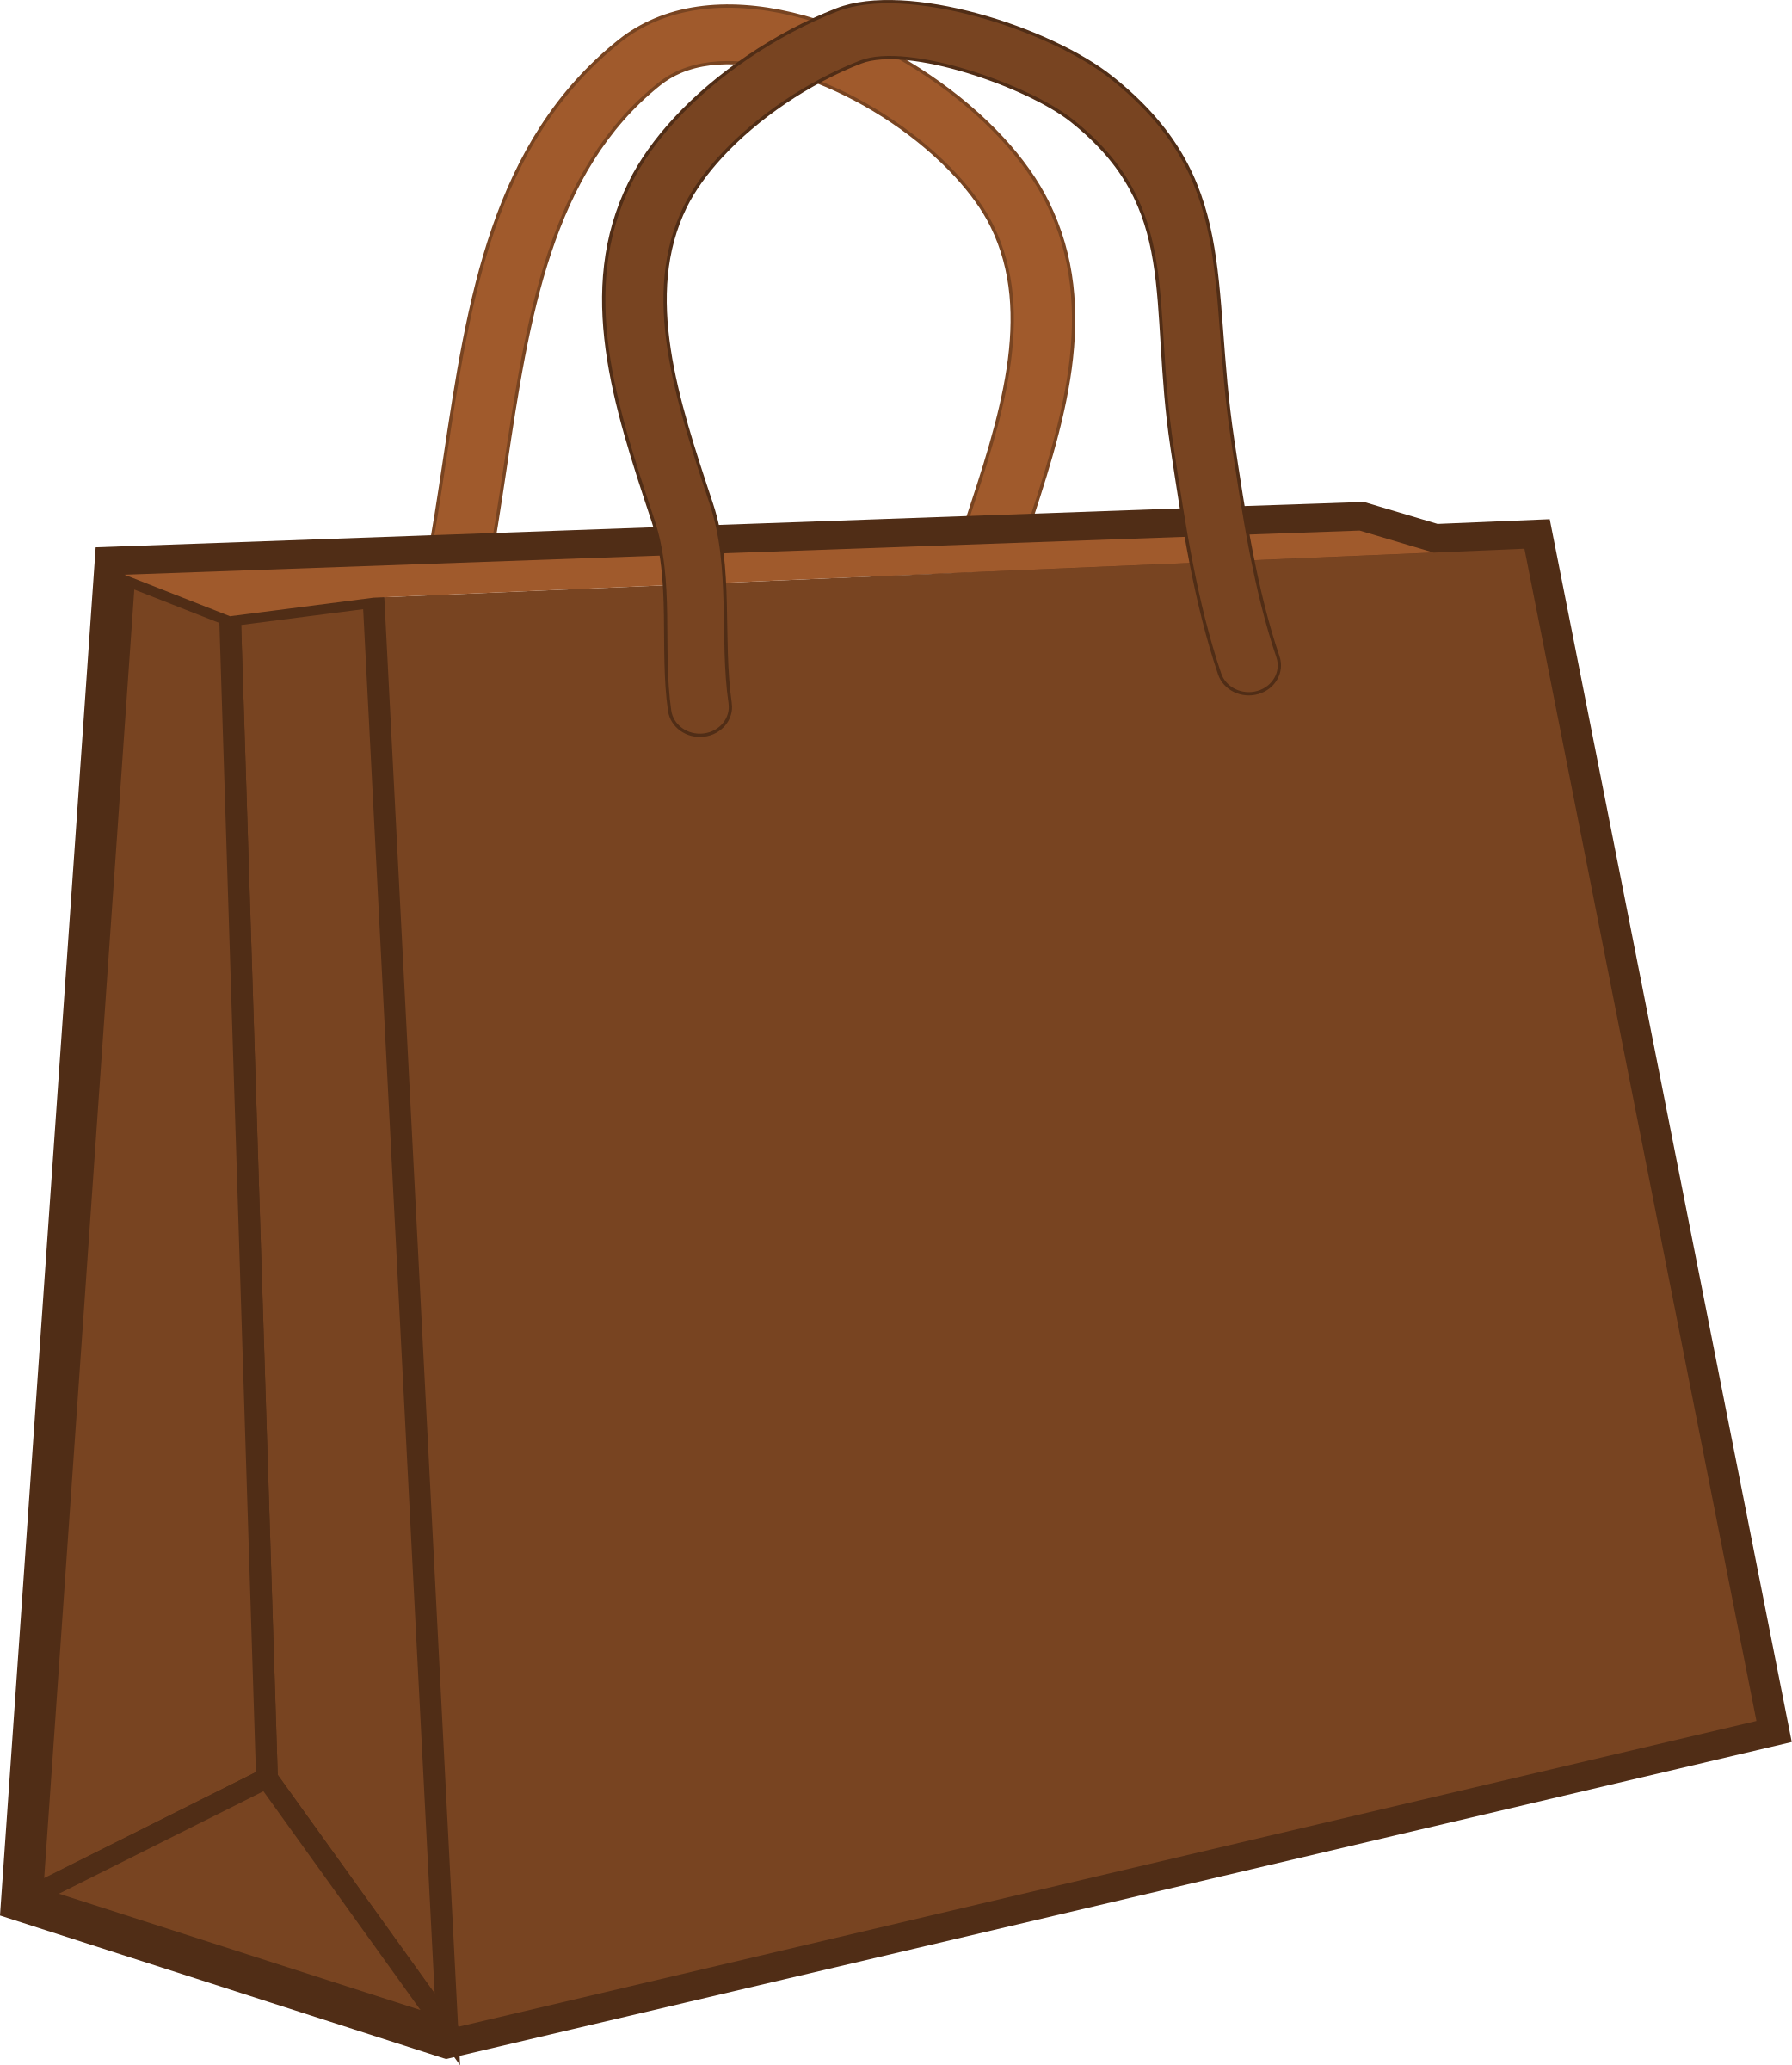 Clipart - Paper shopping bag